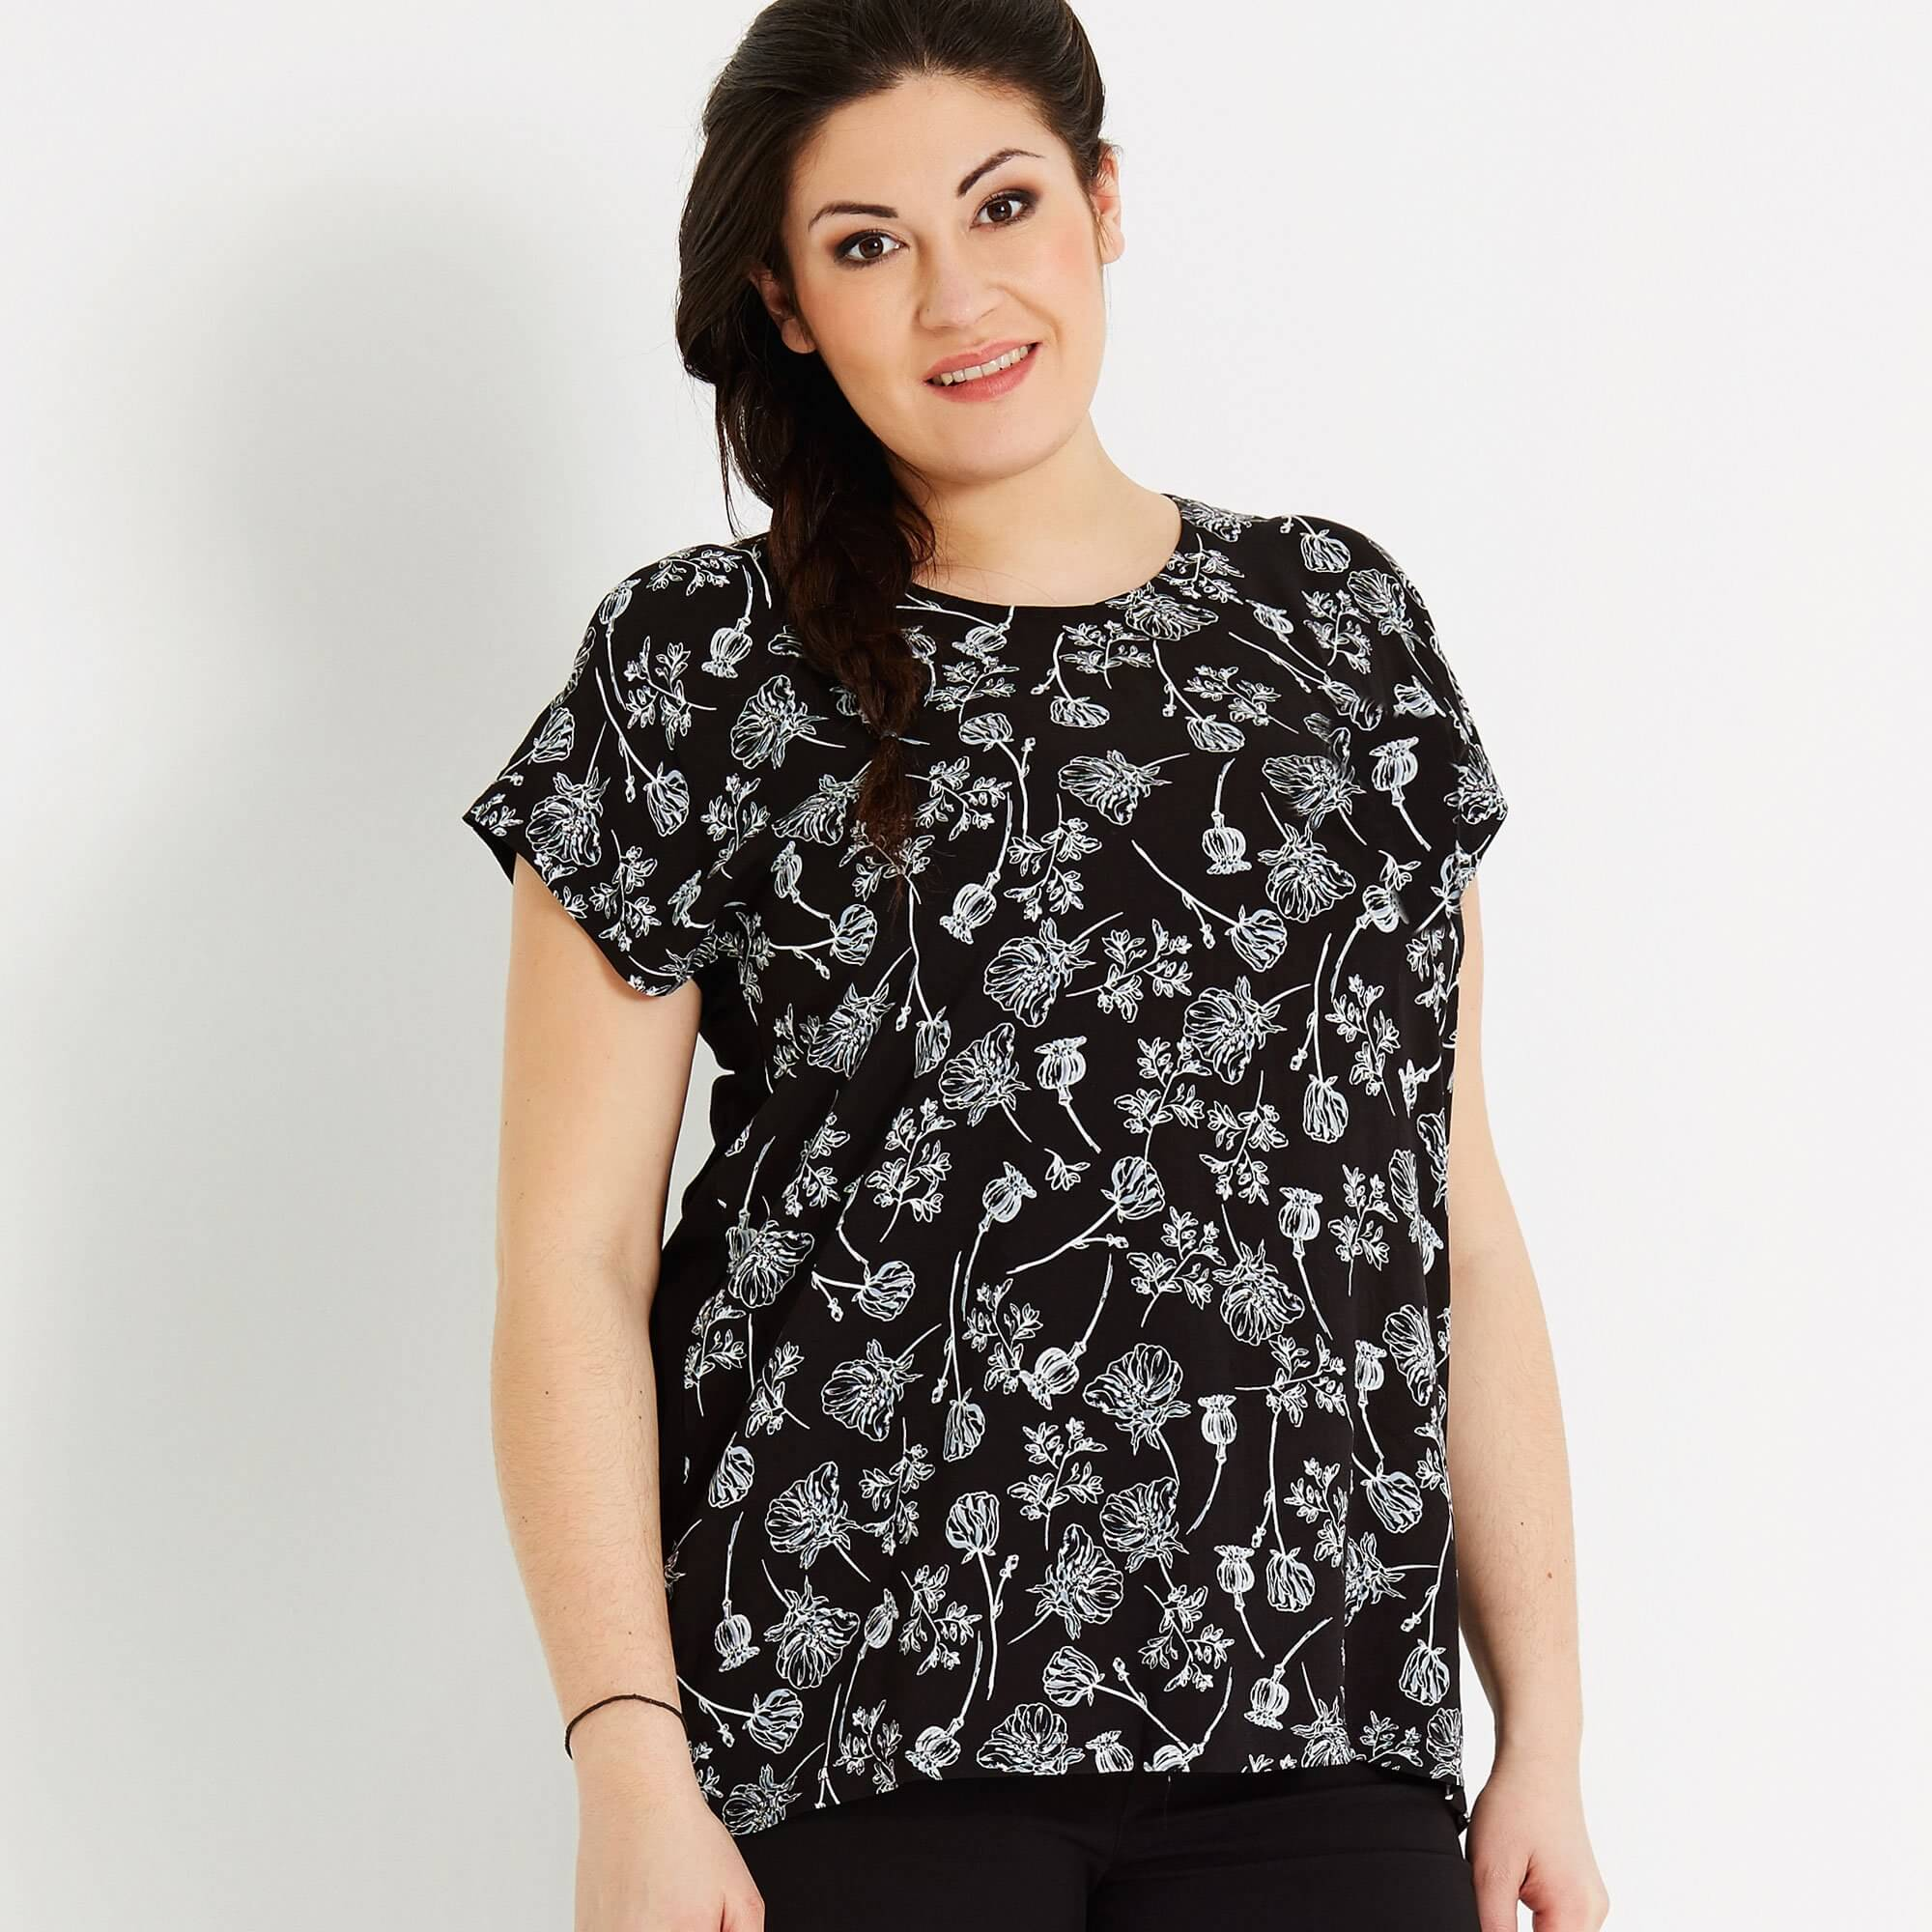 Sort viskose bluse med blomsterprint